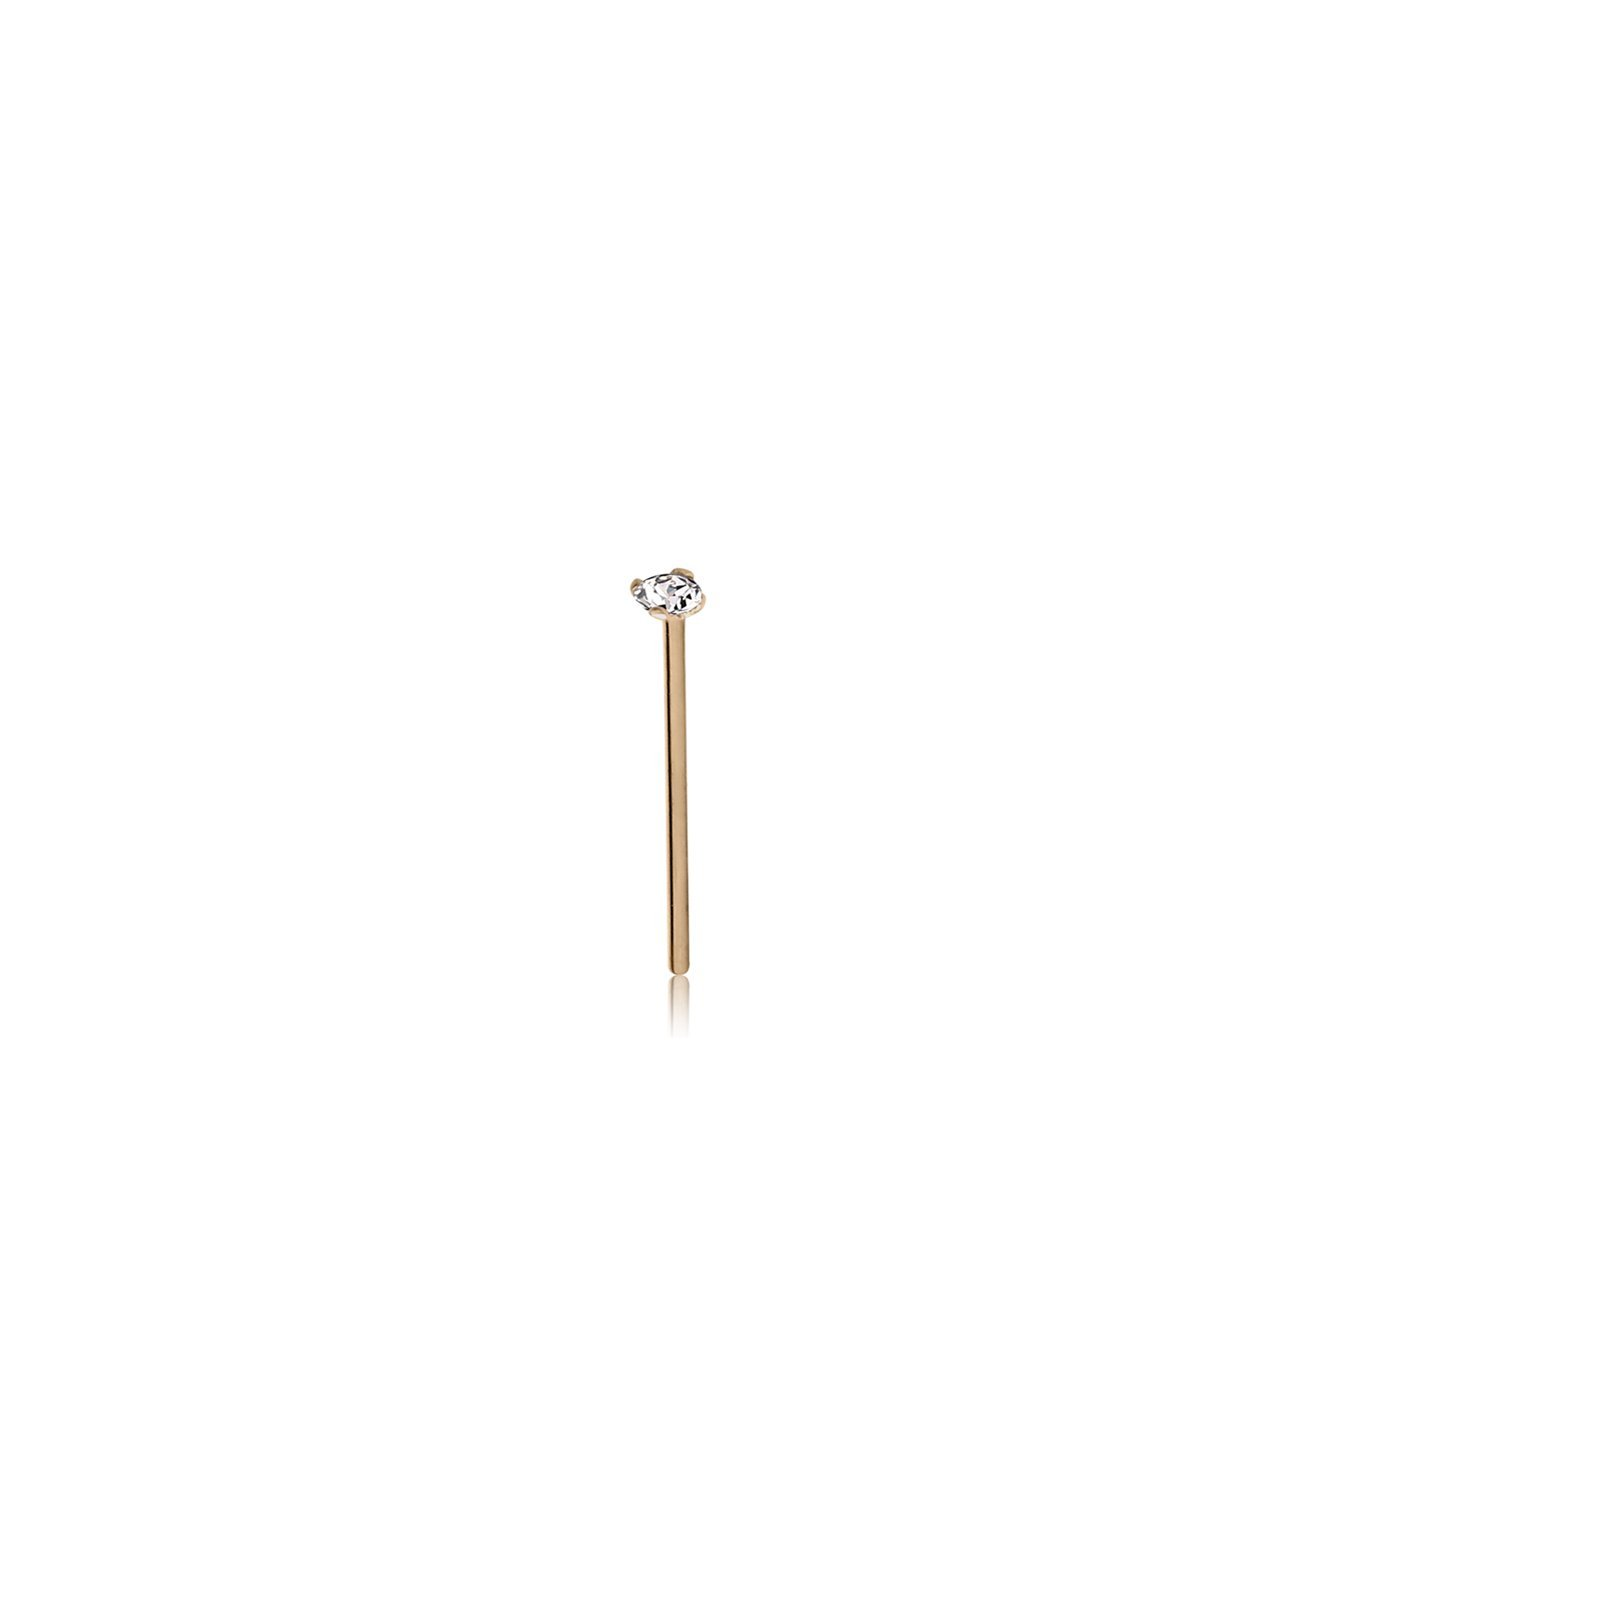 El Morro Body Piercing Jewelry 18K Gold 1.5Mm Prong Jeweled Straight Nose Stud Ring 20g